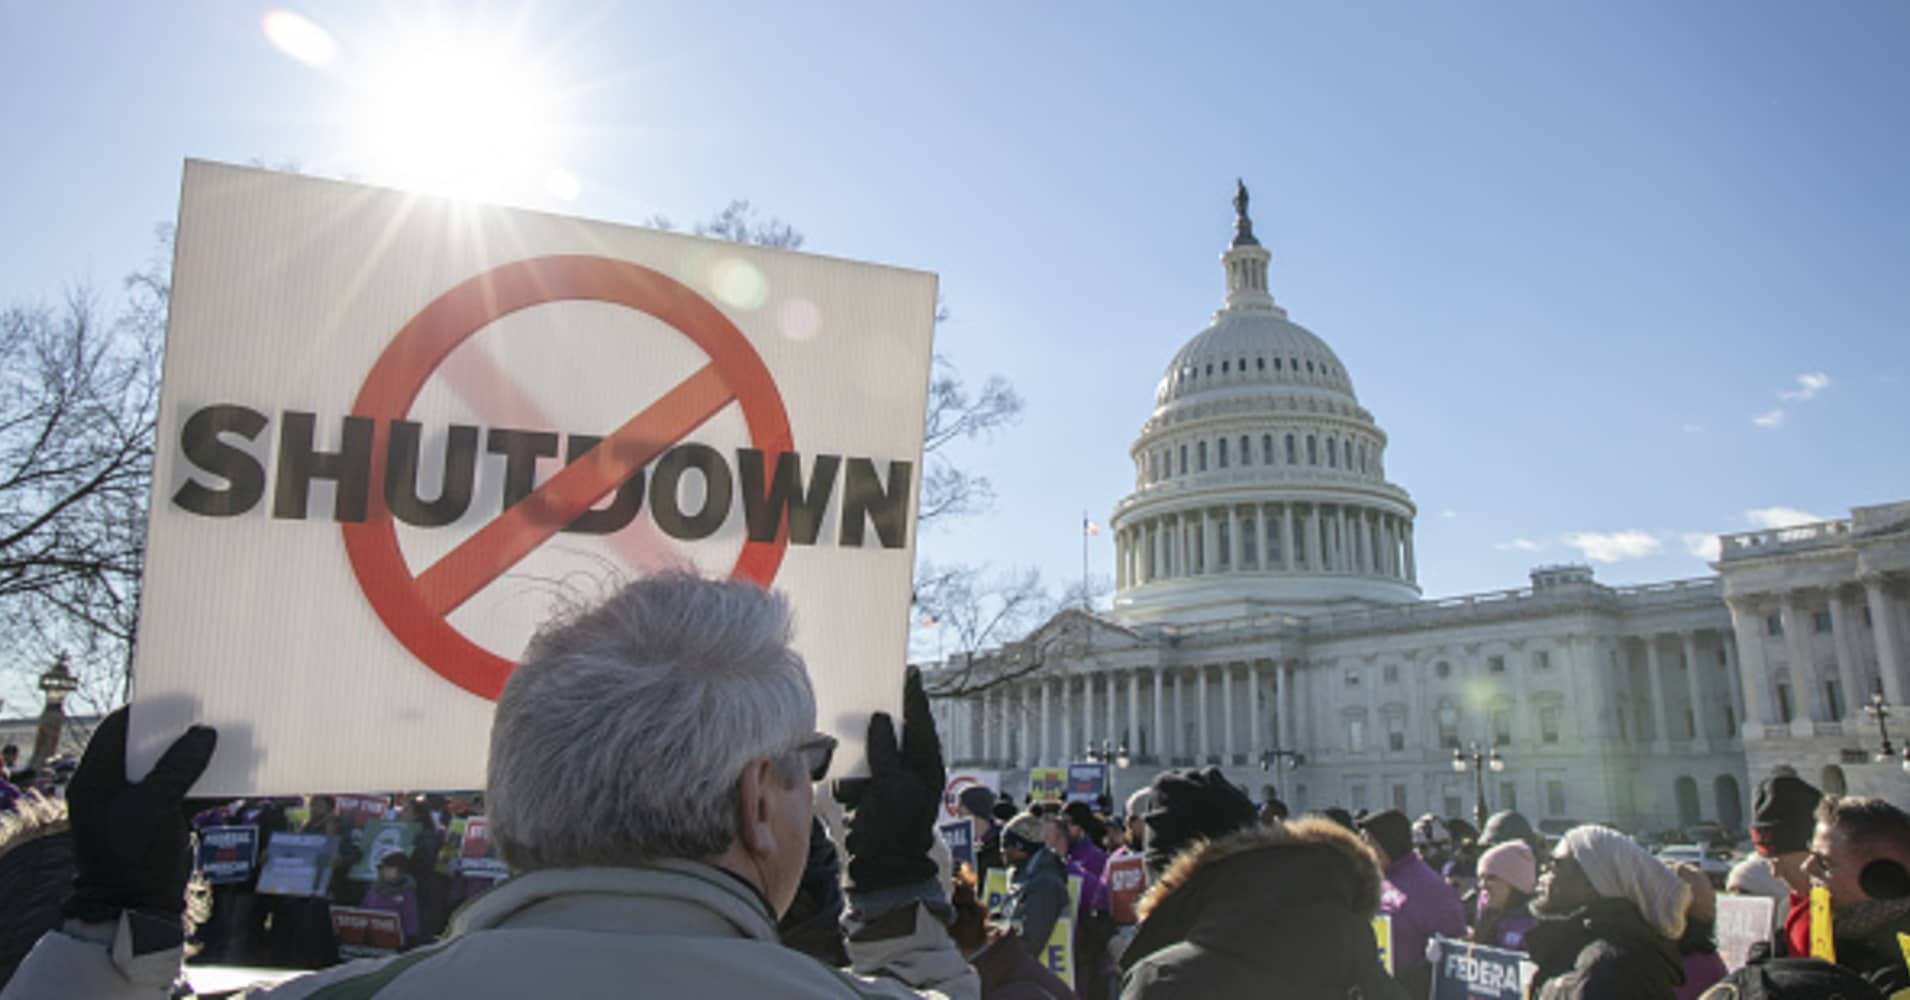 The shutdown has ended, yet some small businesses still struggle to move on